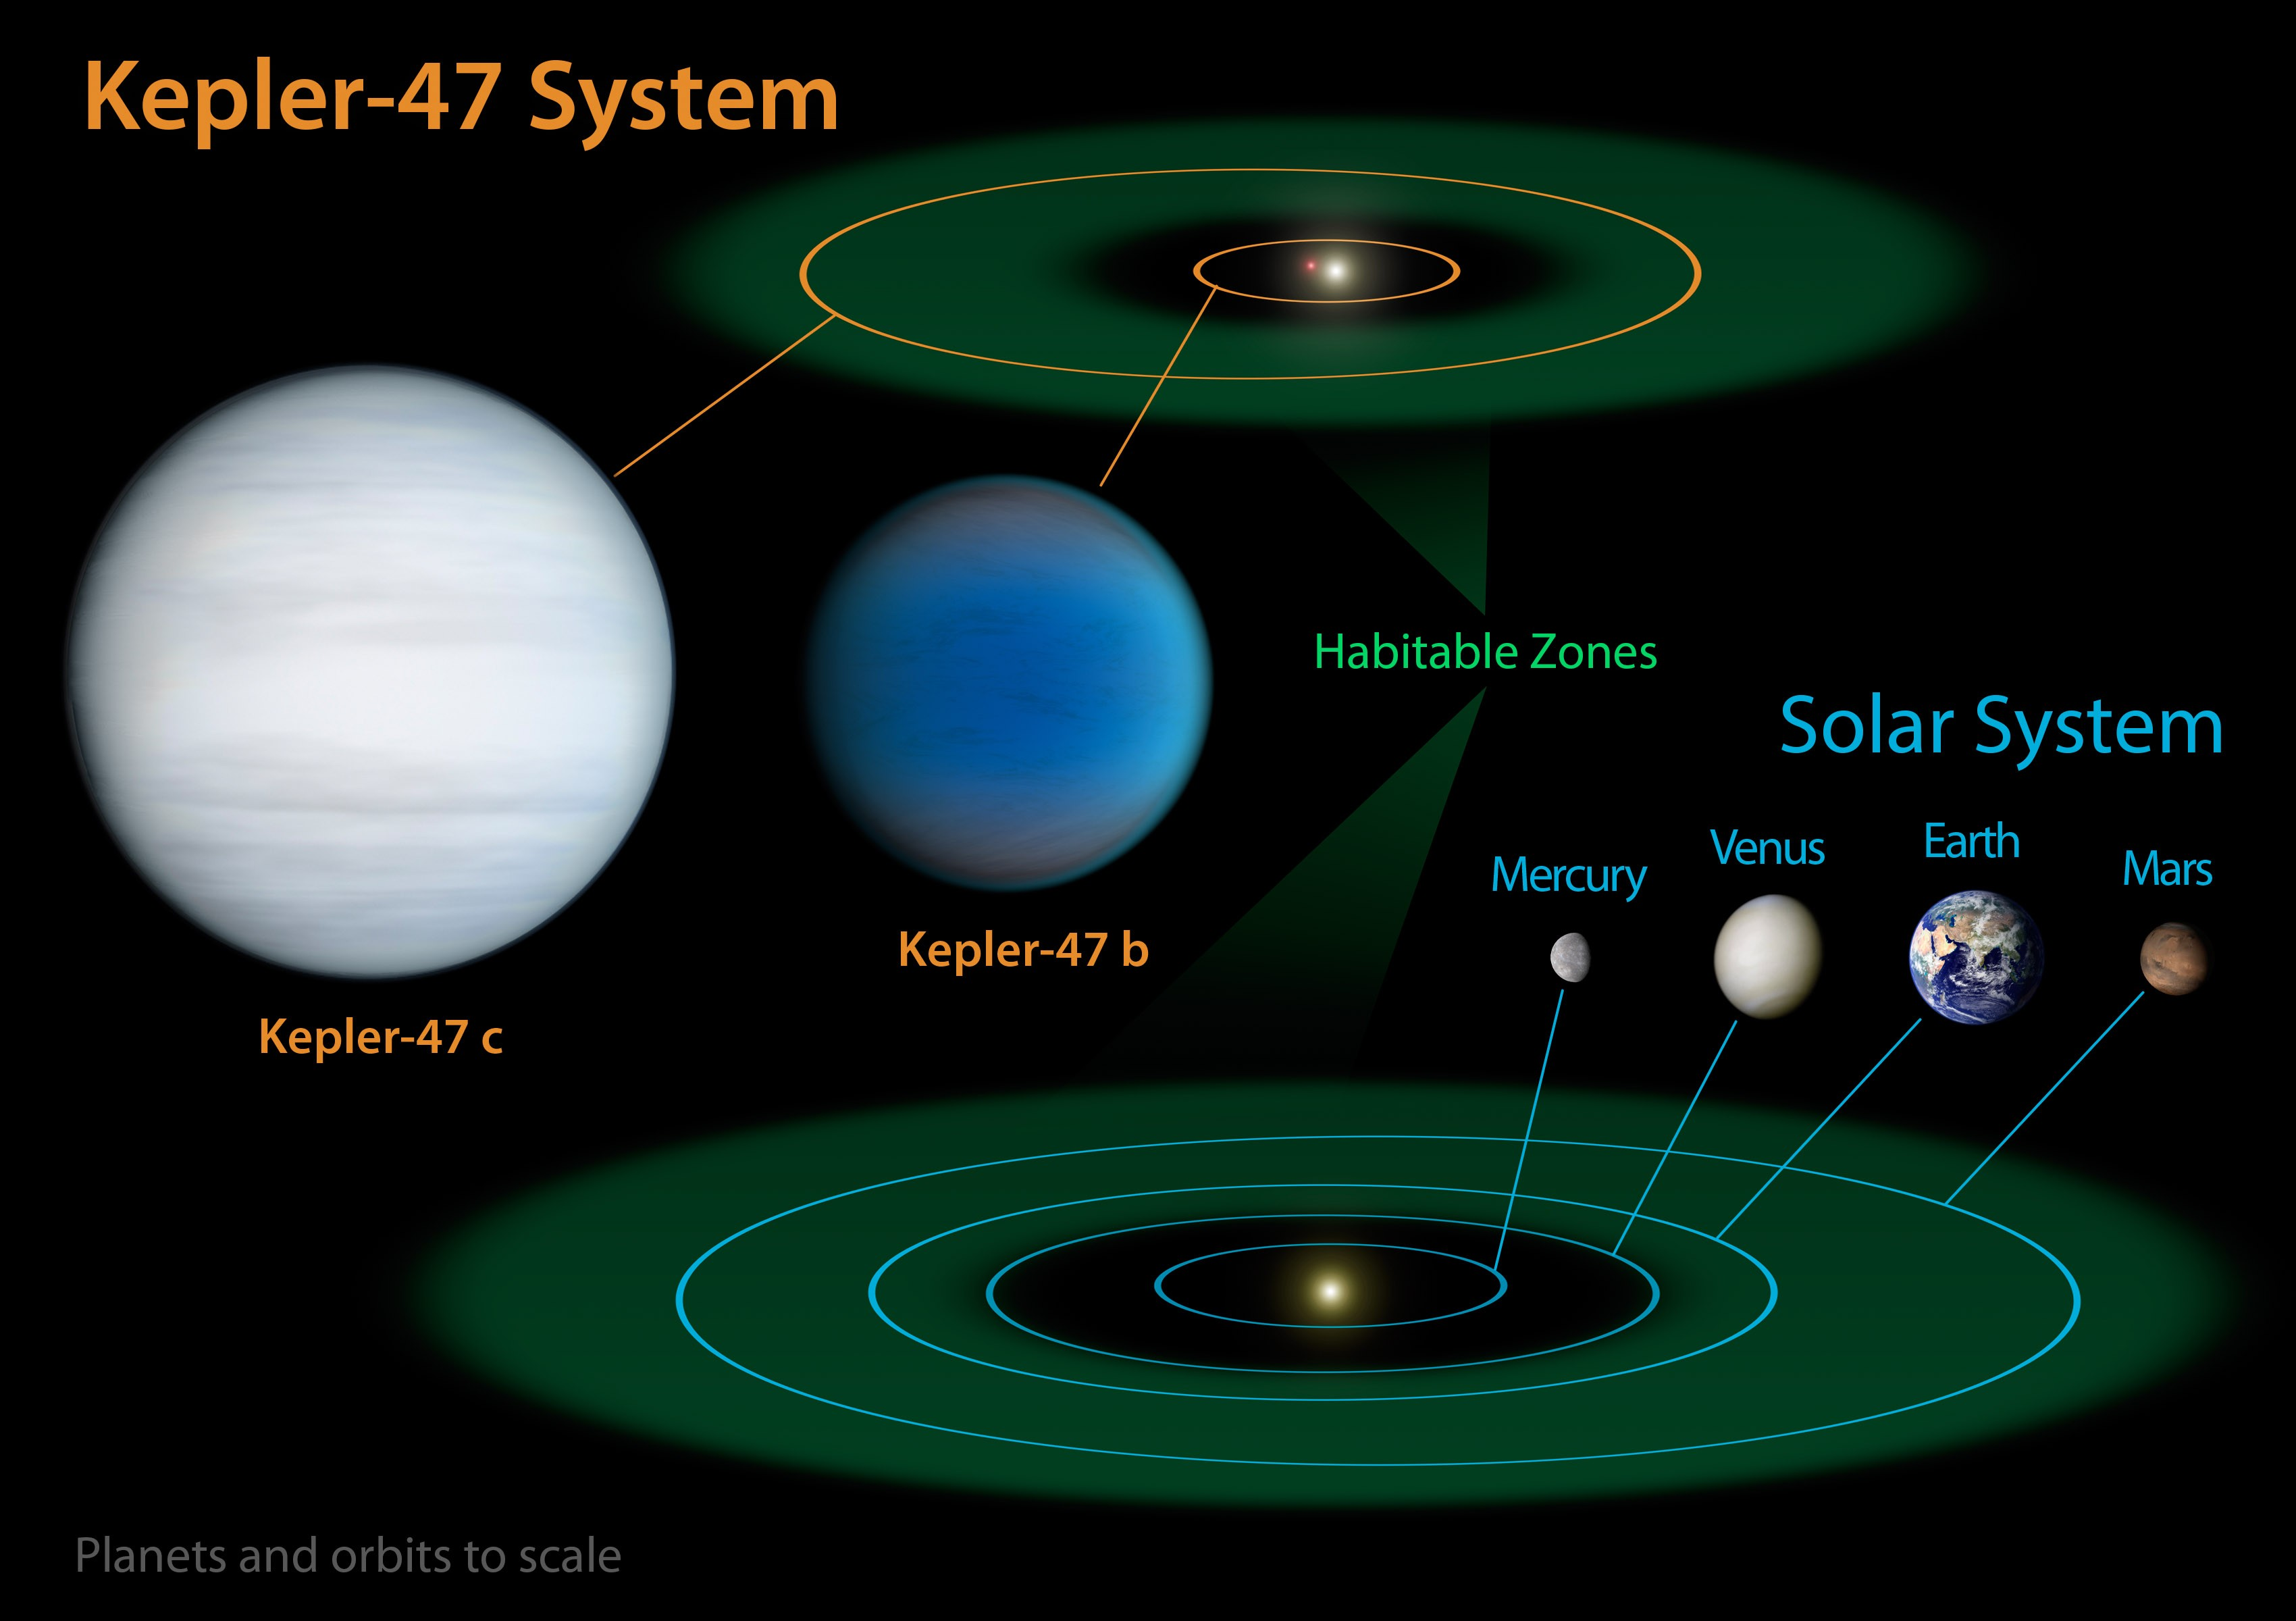 Kepler-47 System Diagram